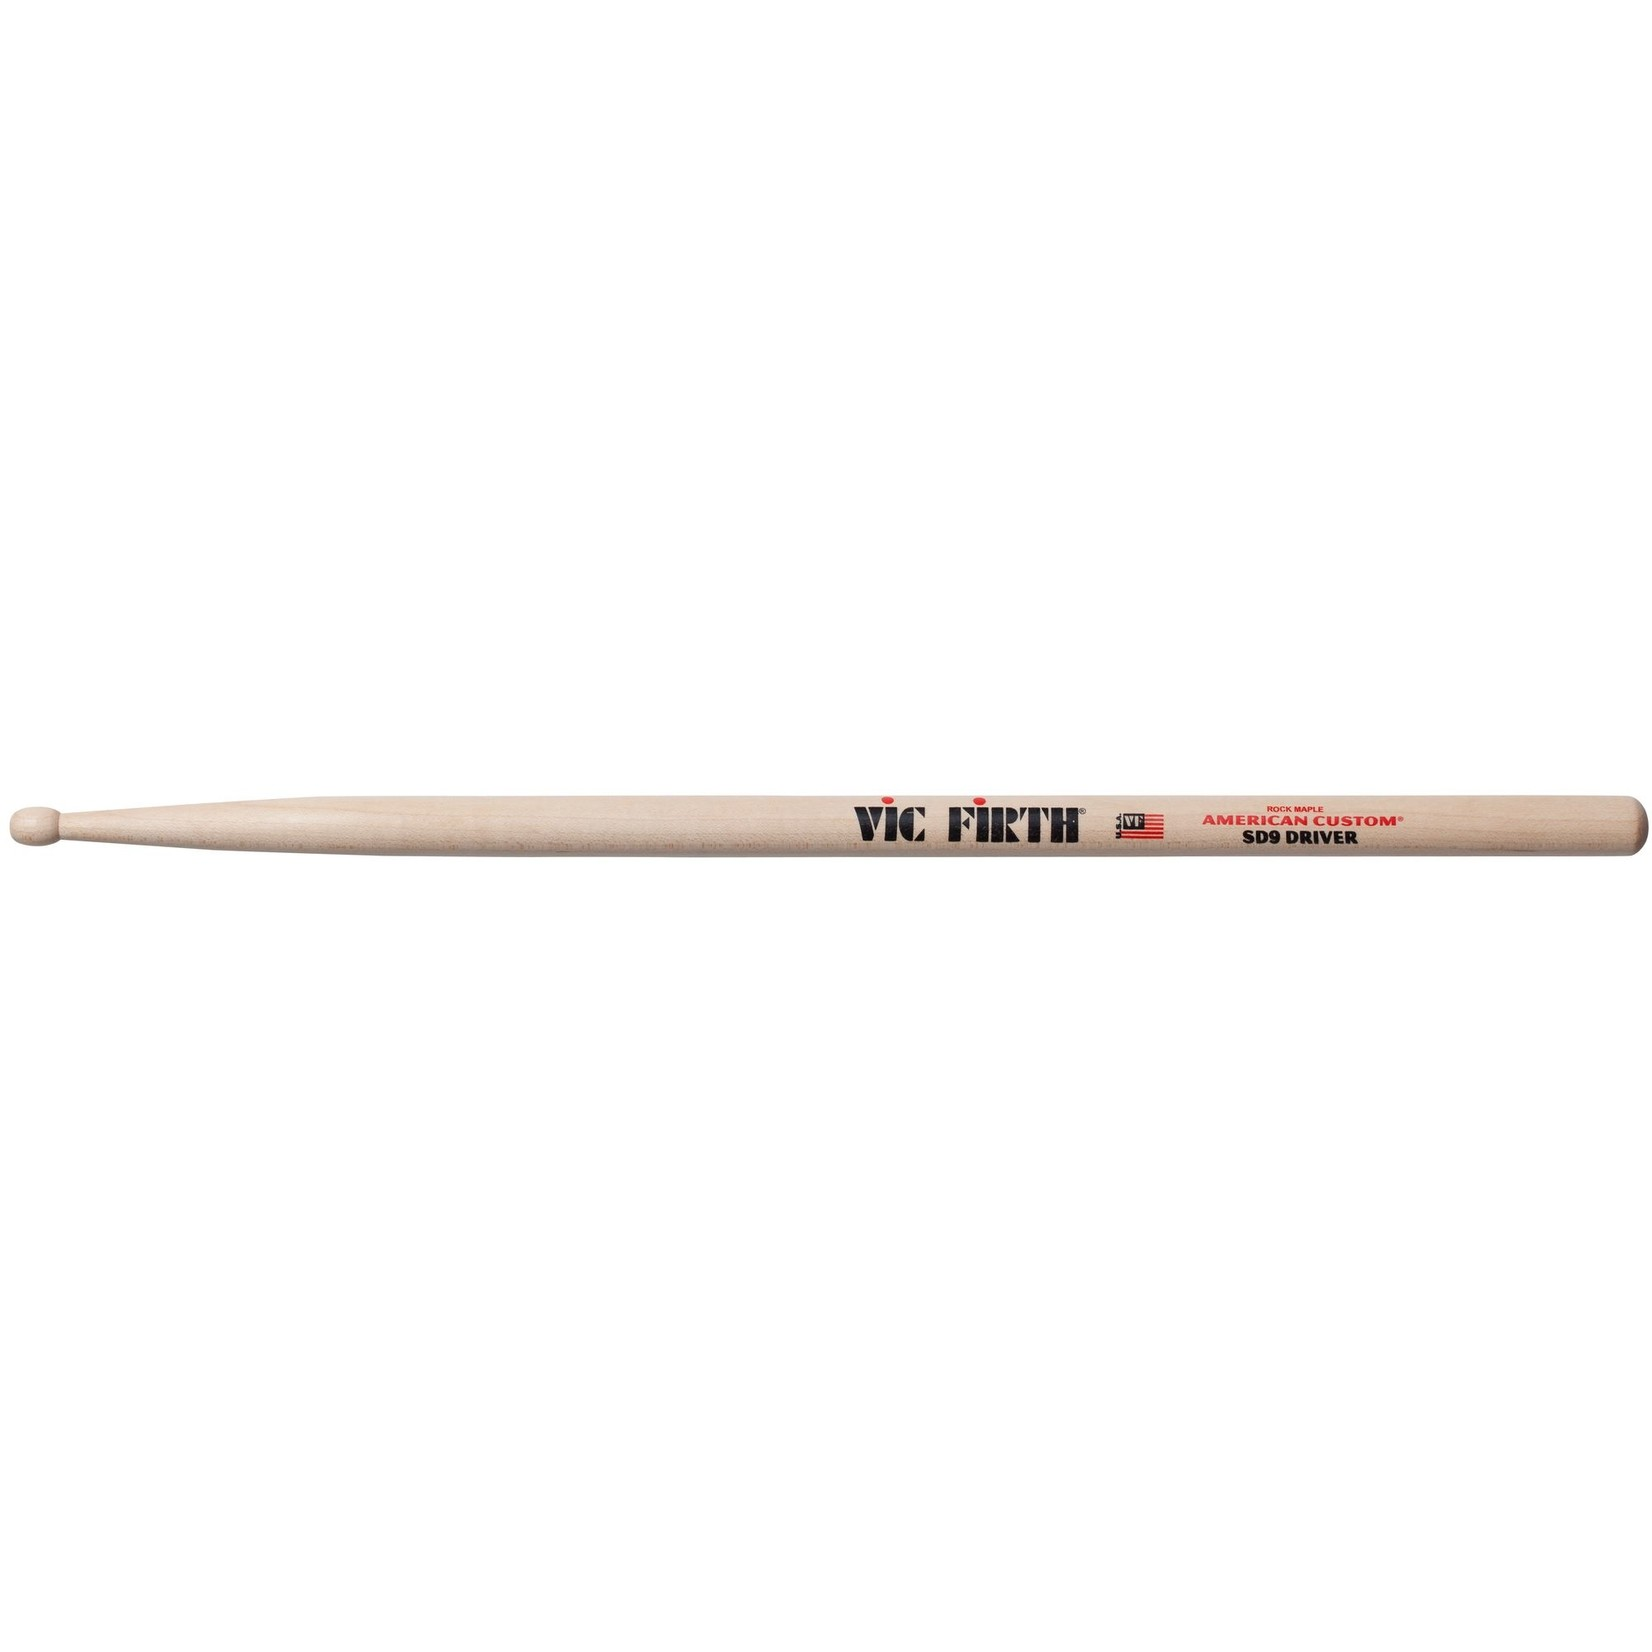 Vic Firth Vic Firth American Classic® HD9 Hickory